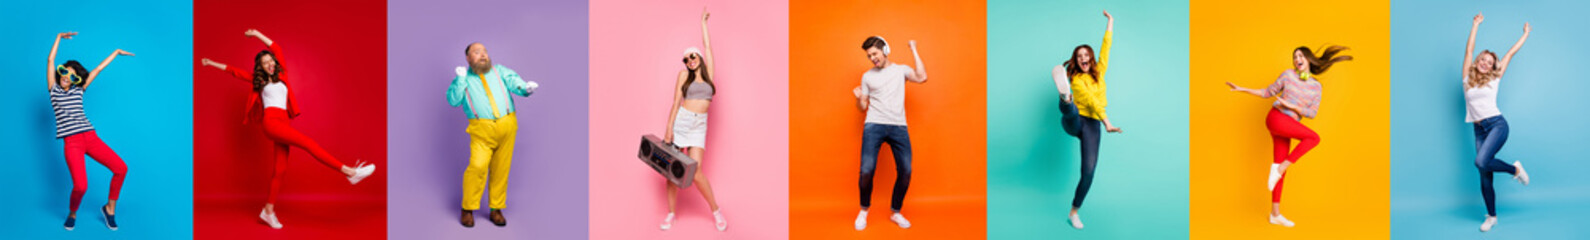 Photo Blinds Dance School Panorama collage eight cool funny attractive active modern people six ladies two guys men good mood dance discotheque party isolated many colors blue violet teal orange yellow pink red background